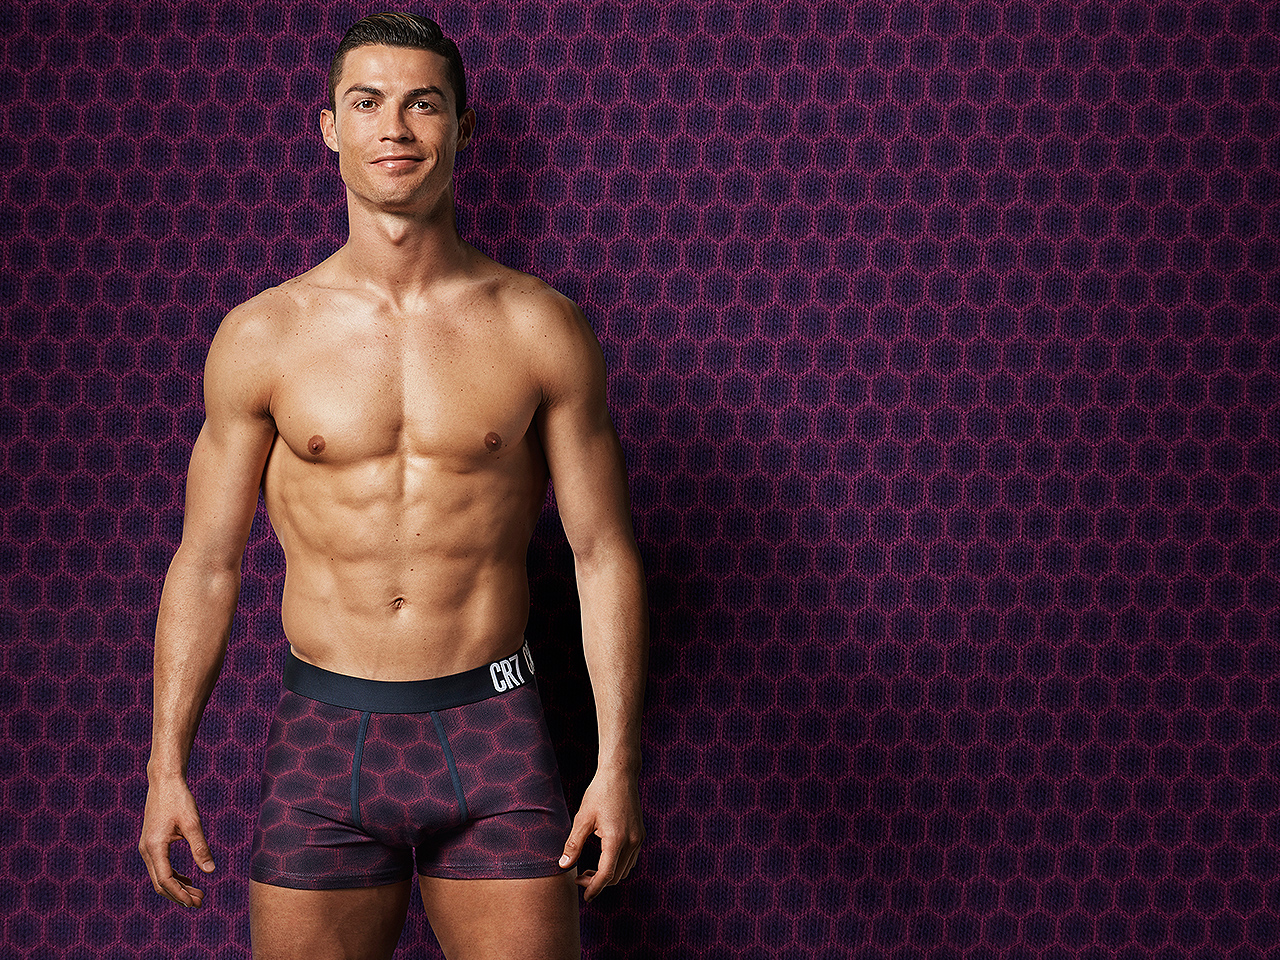 Cristiano Ronaldo Looks Ripped in New CR7 Underwear Campaign  Photos c0bceadd4a